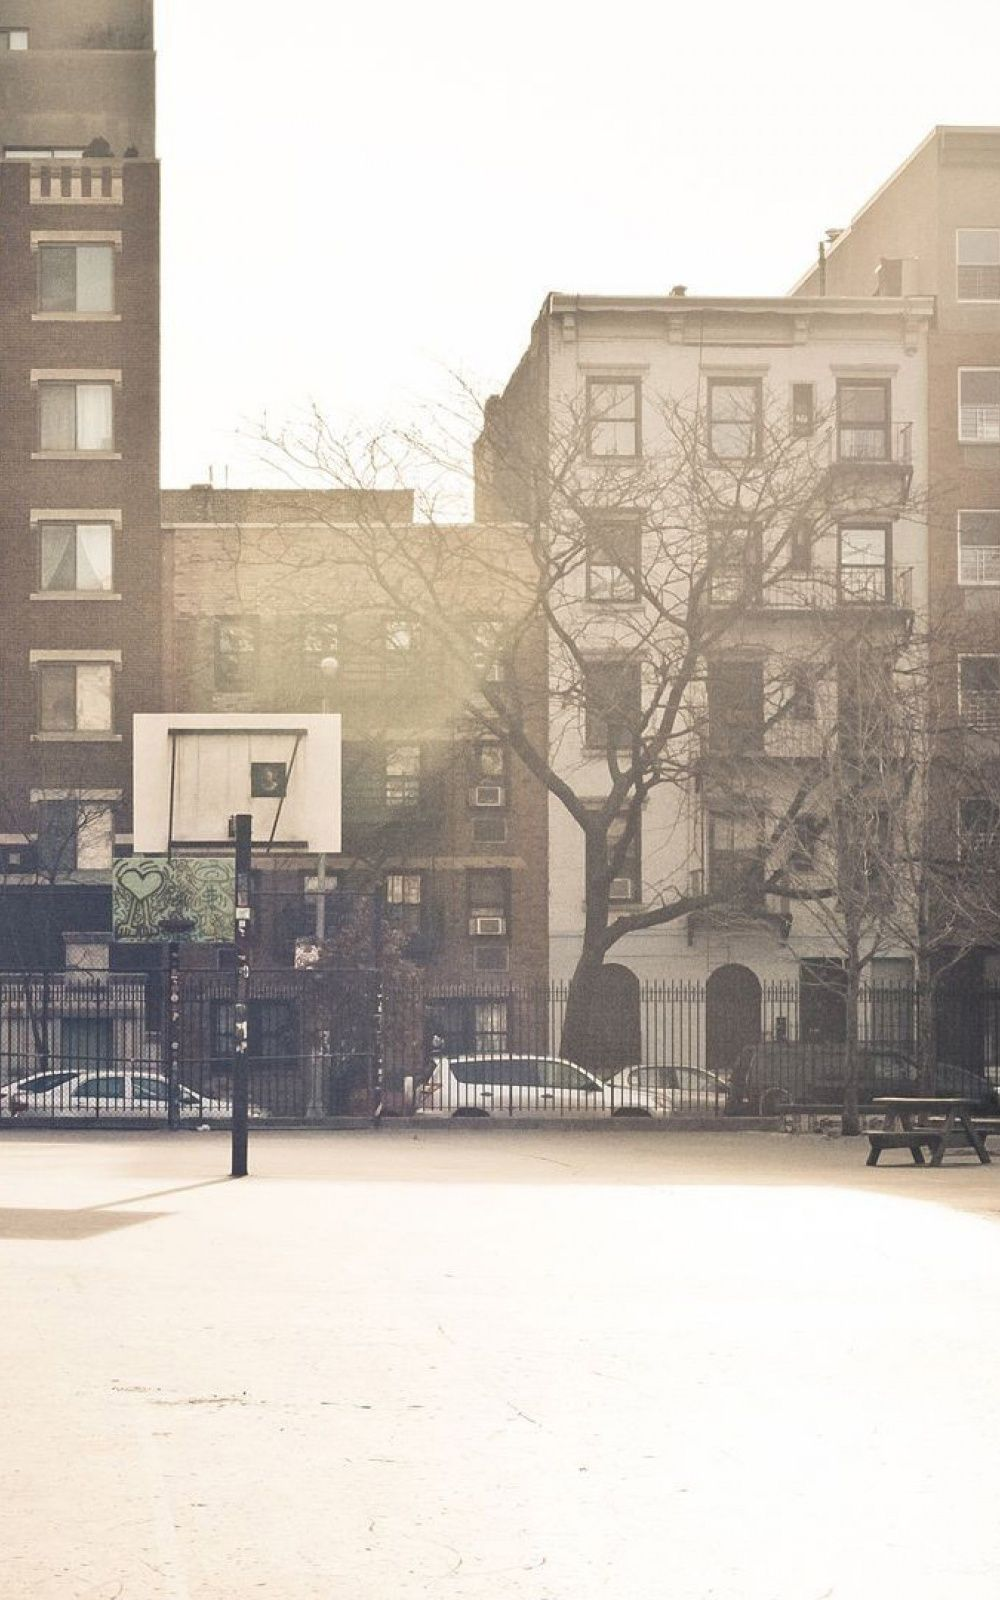 City Basketball Court Mobile Wallpaper Iphone Android Samsung Pixel Xiaomi In 2020 Iphone Wallpaper Android Wallpaper Sunset Images